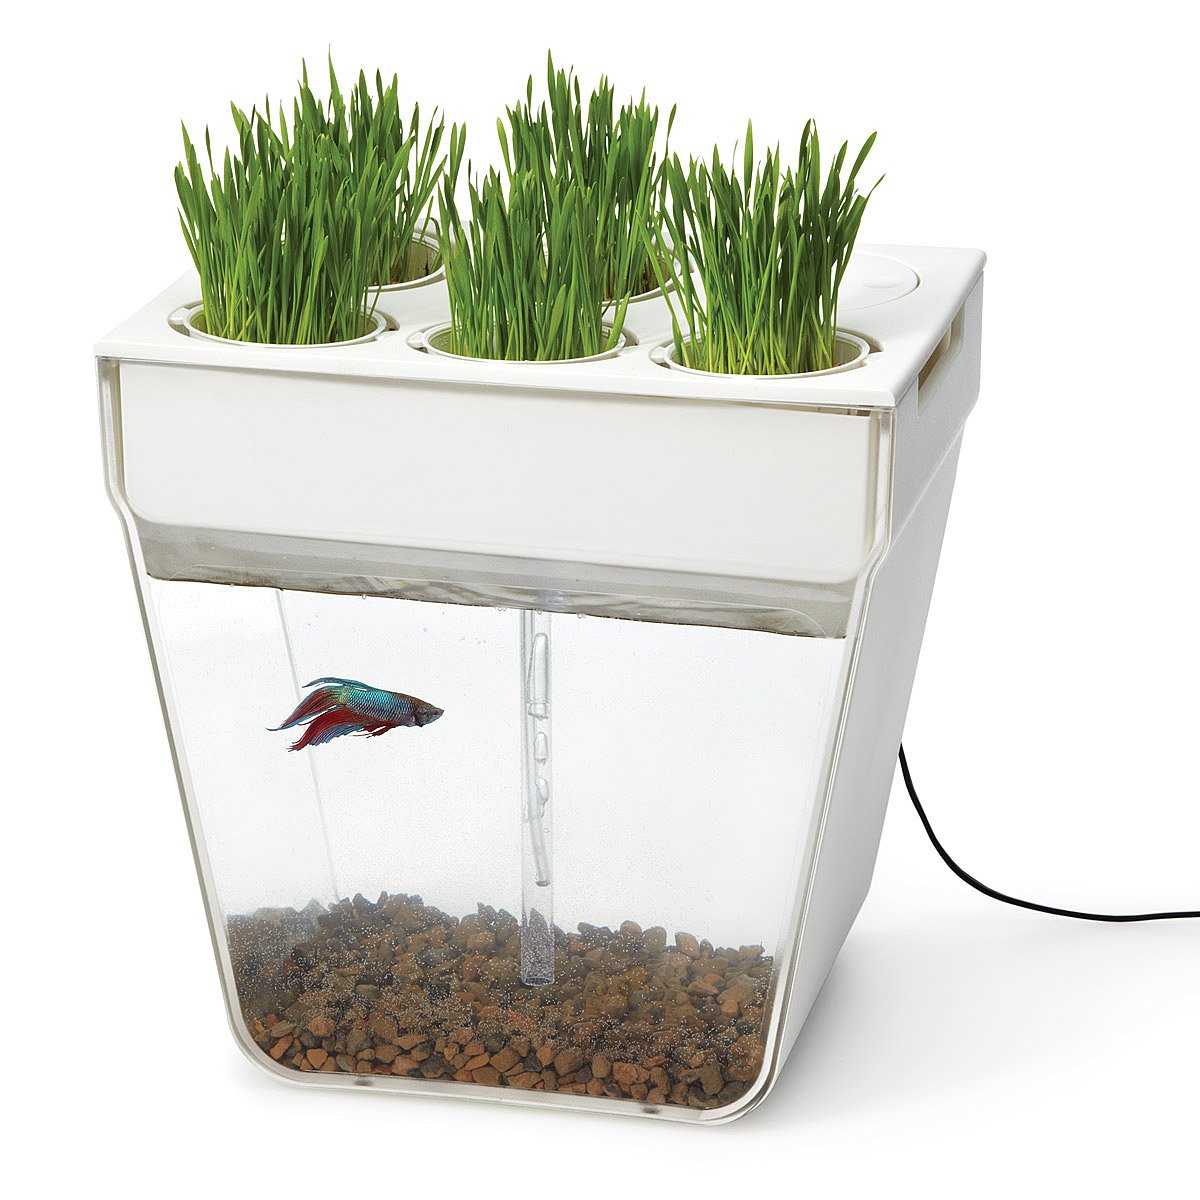 Countertop Herb Garden Kit : Water Garden Fishbowl & Herb Garden UncommonGoods